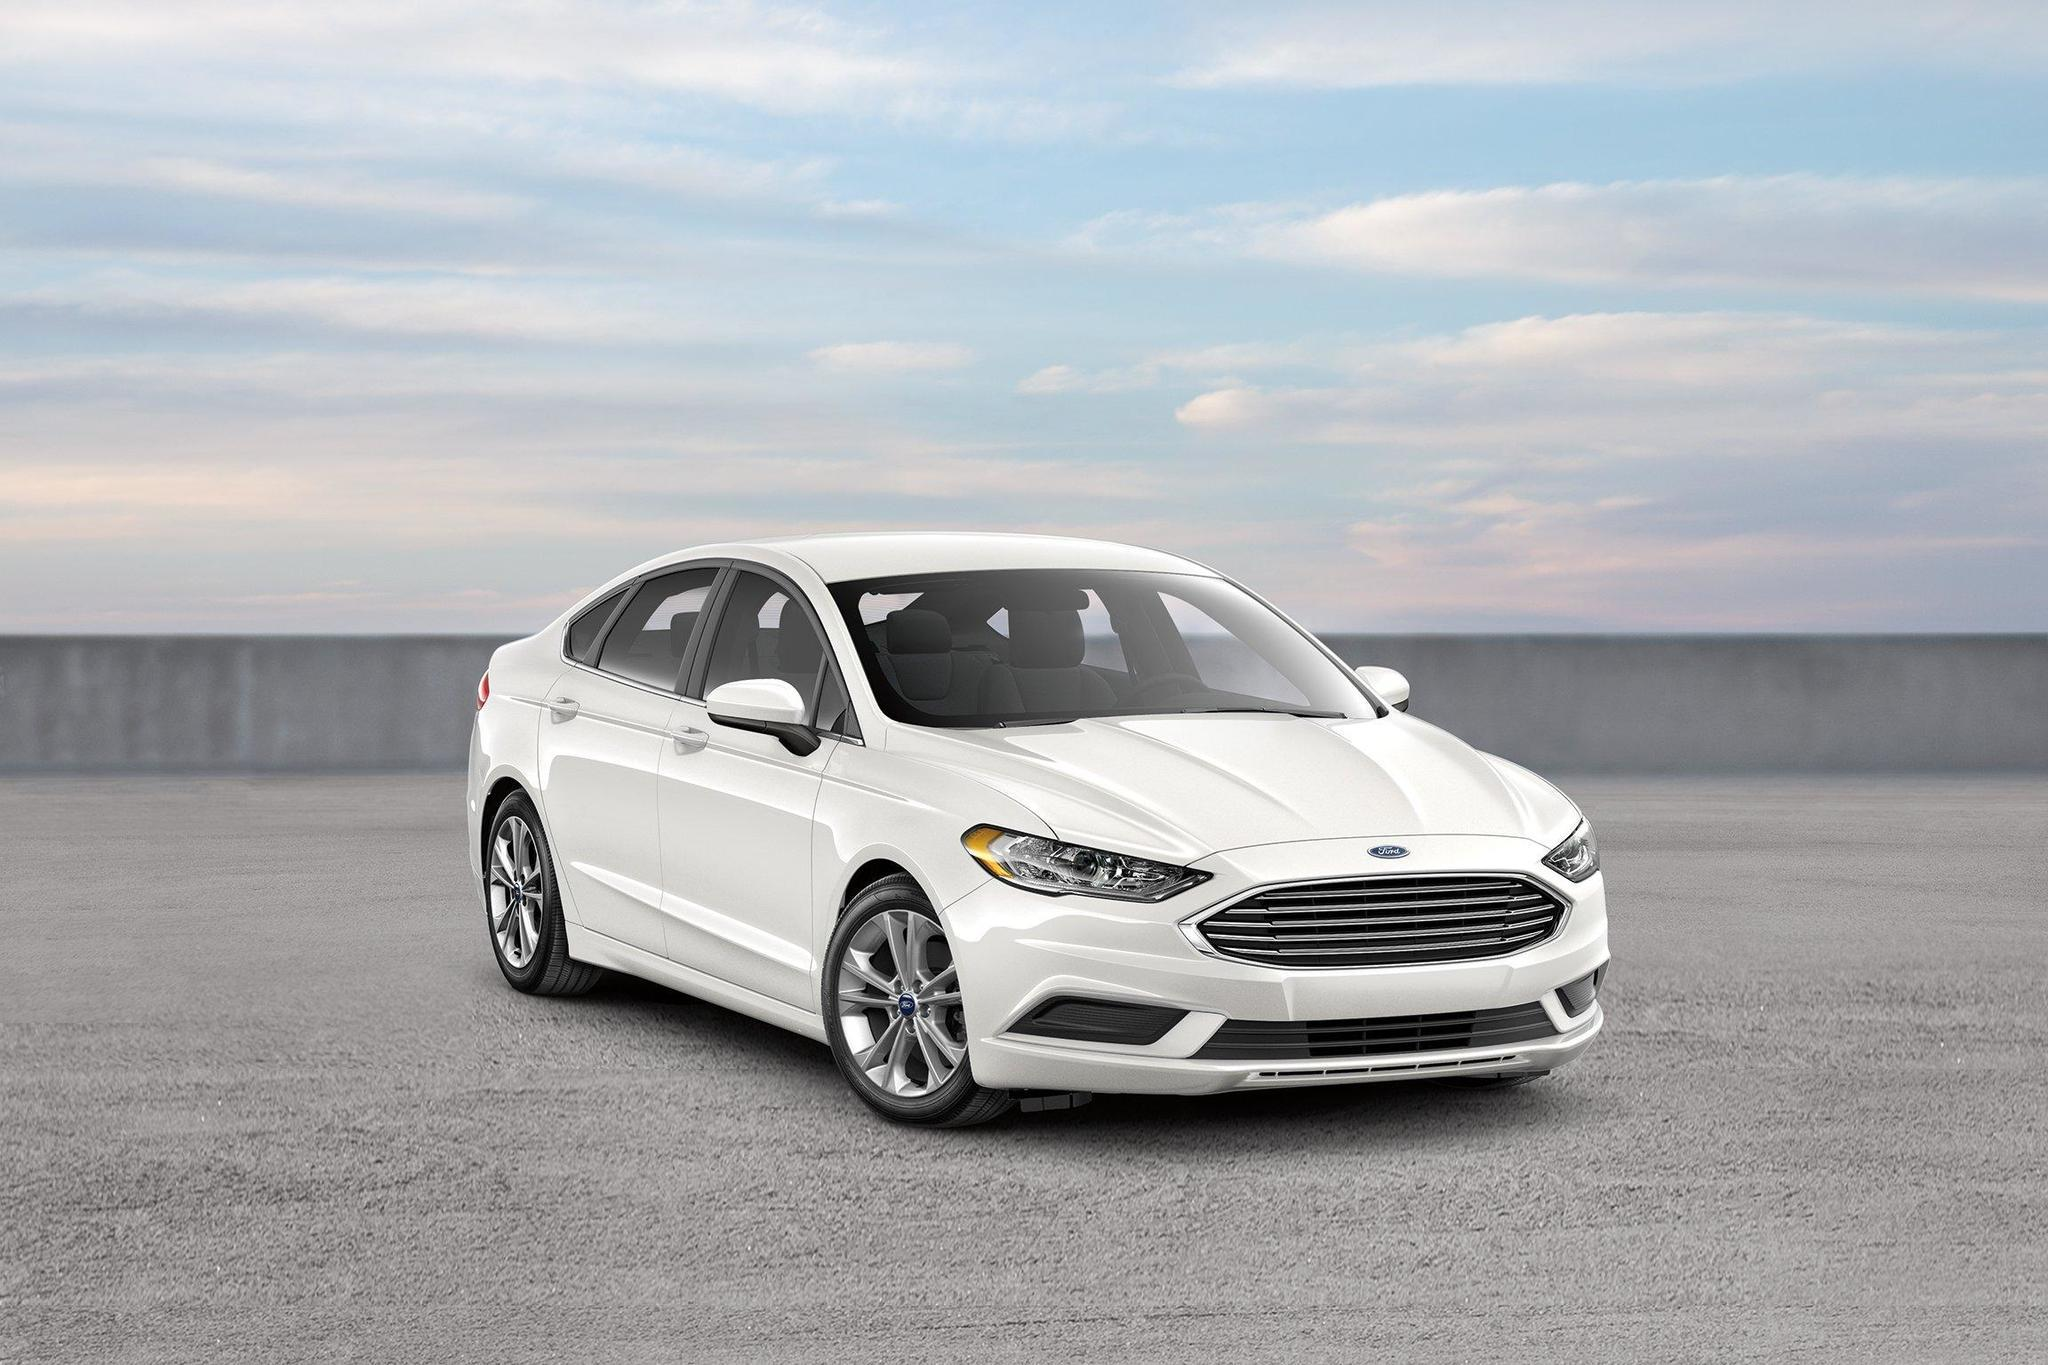 next ford fusion may be more like a wagon than a midsize sedan carroll county times. Black Bedroom Furniture Sets. Home Design Ideas